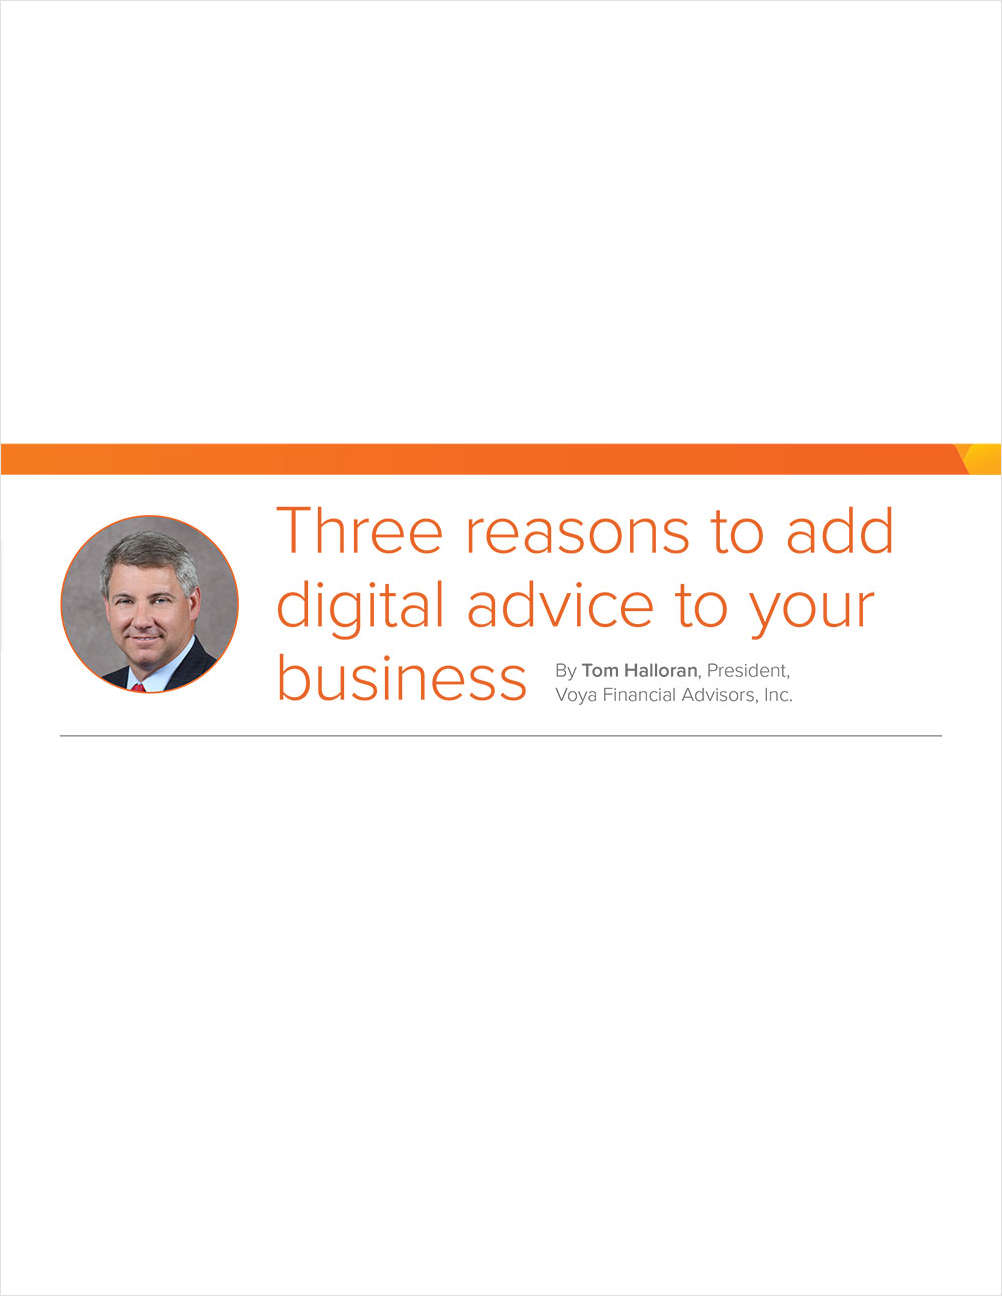 Three reasons to add digital advice to your business